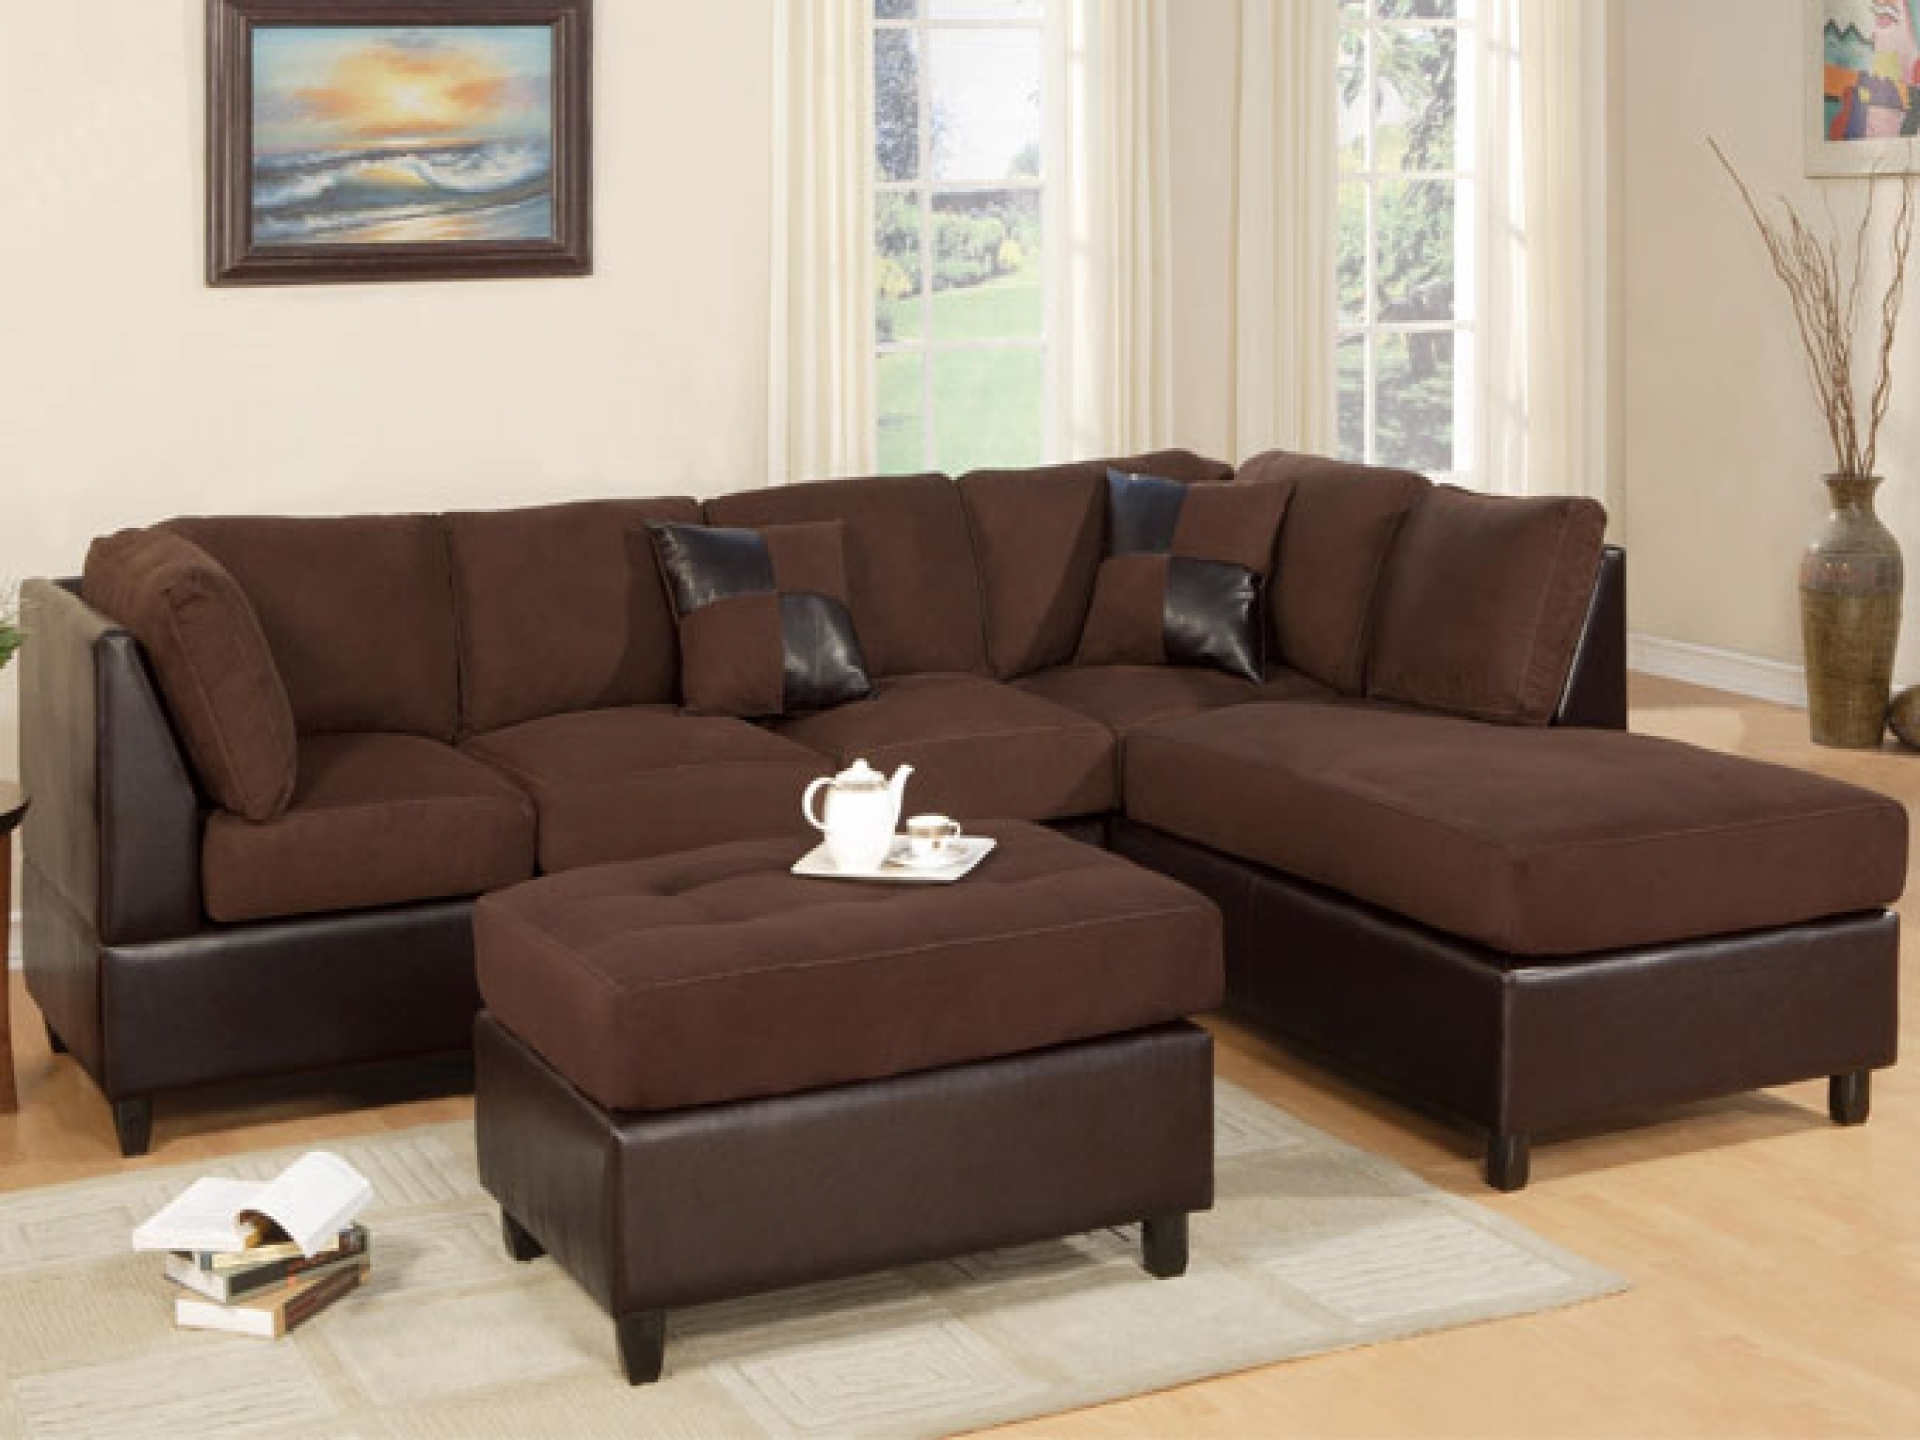 Famous Furniture : Sectional Couch Pieces Recliner Table Corner Sofa John Inside Ontario Sectional Sofas (View 14 of 15)